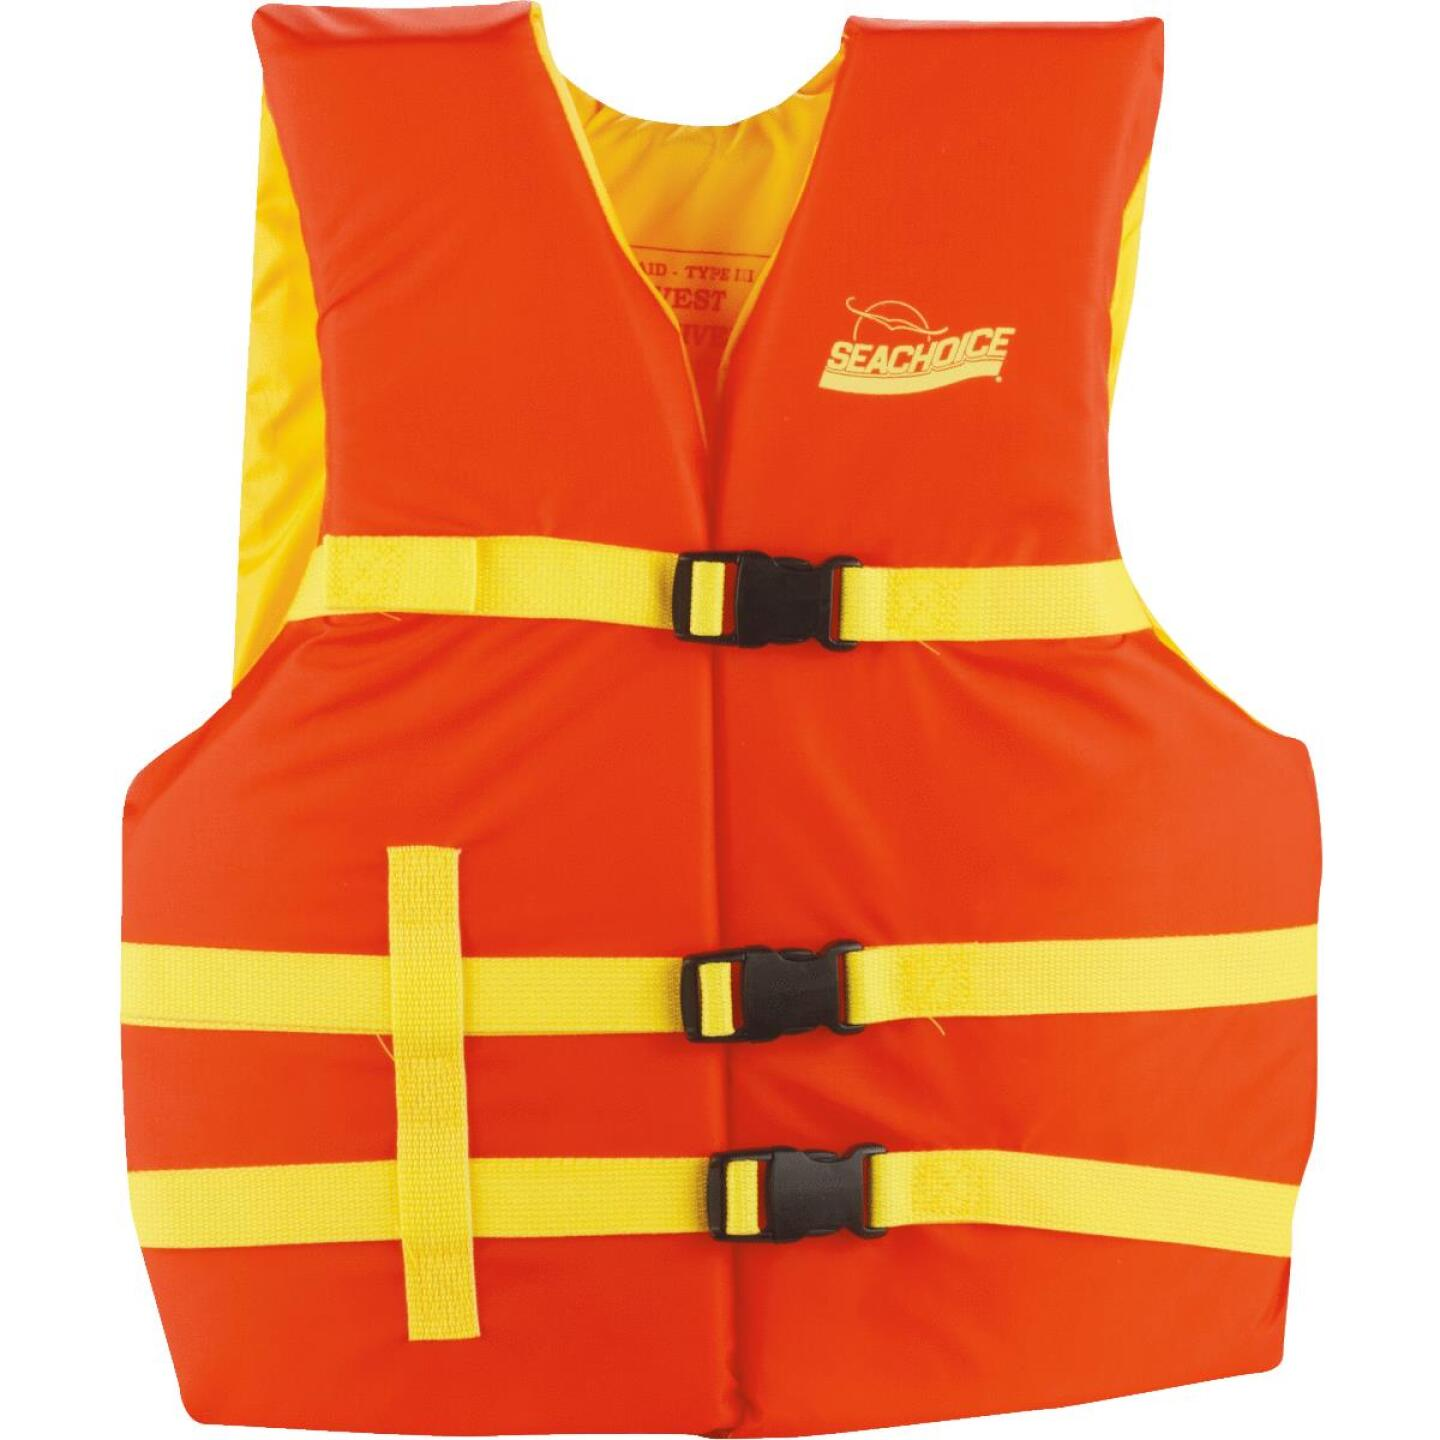 Seachoice Adult Type III & USCG 90 Lb. & Up Life Vest Image 1